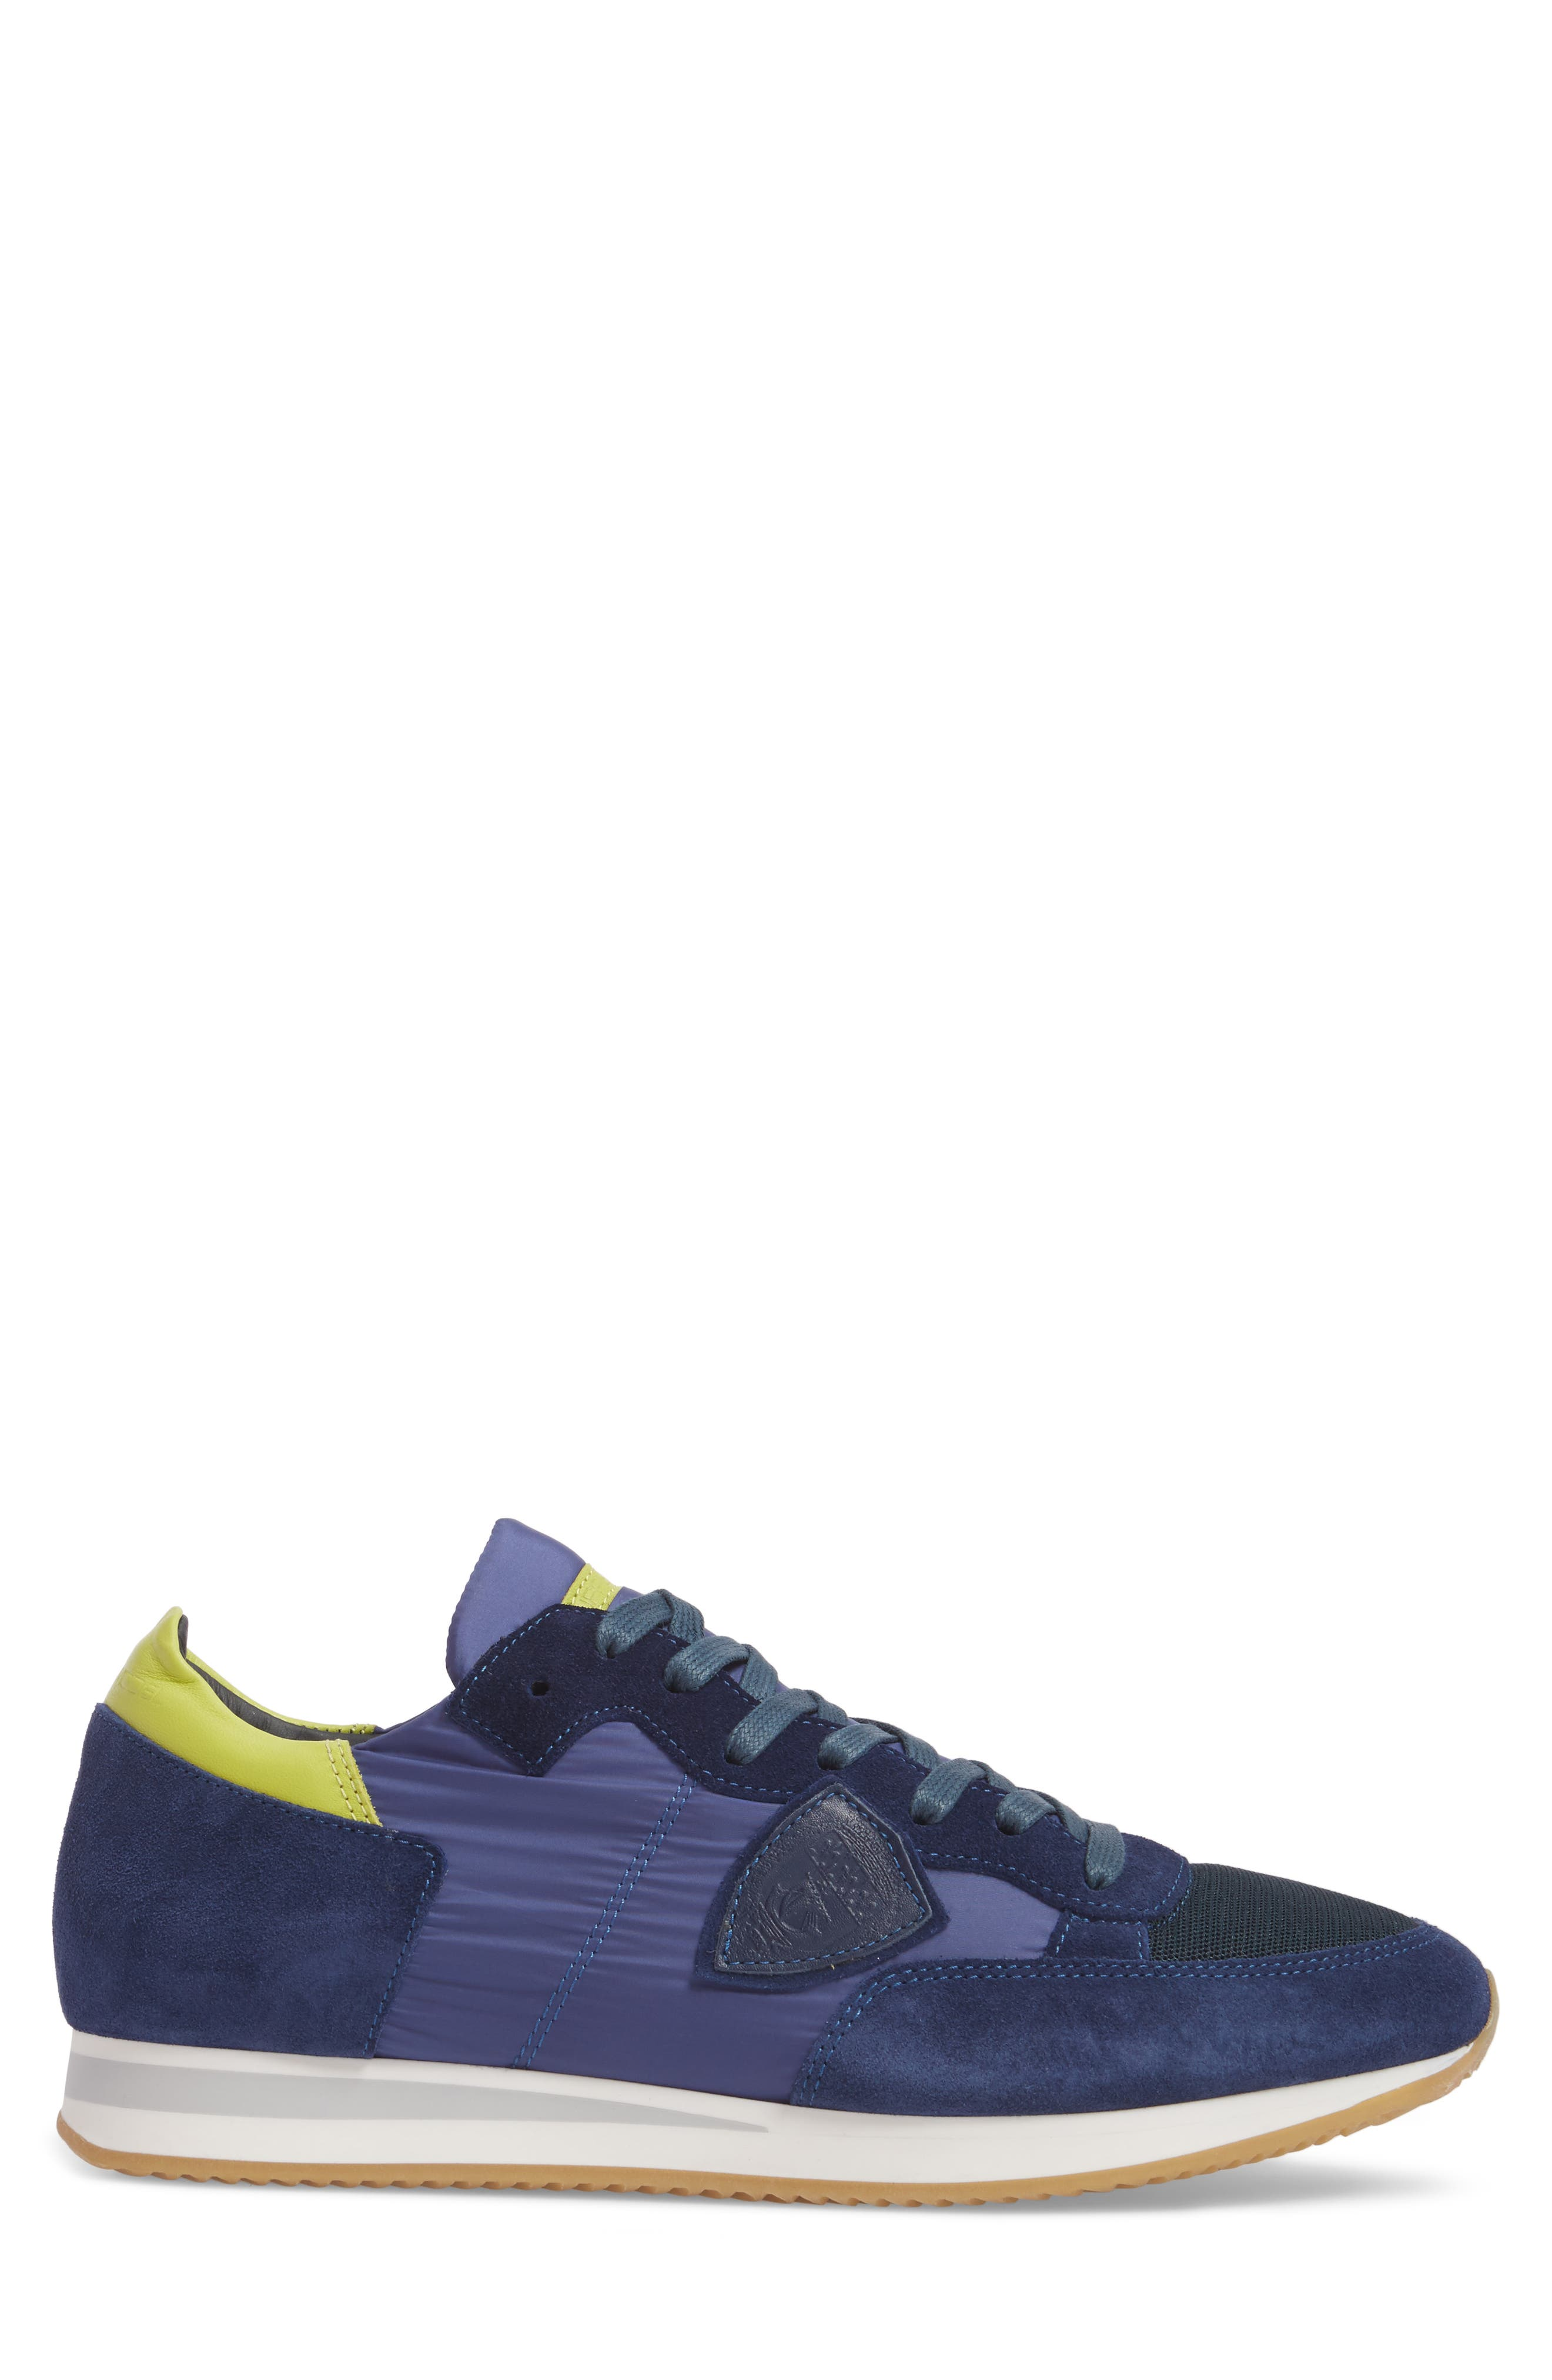 Tropez Low Top Sneaker,                             Alternate thumbnail 3, color,                             430